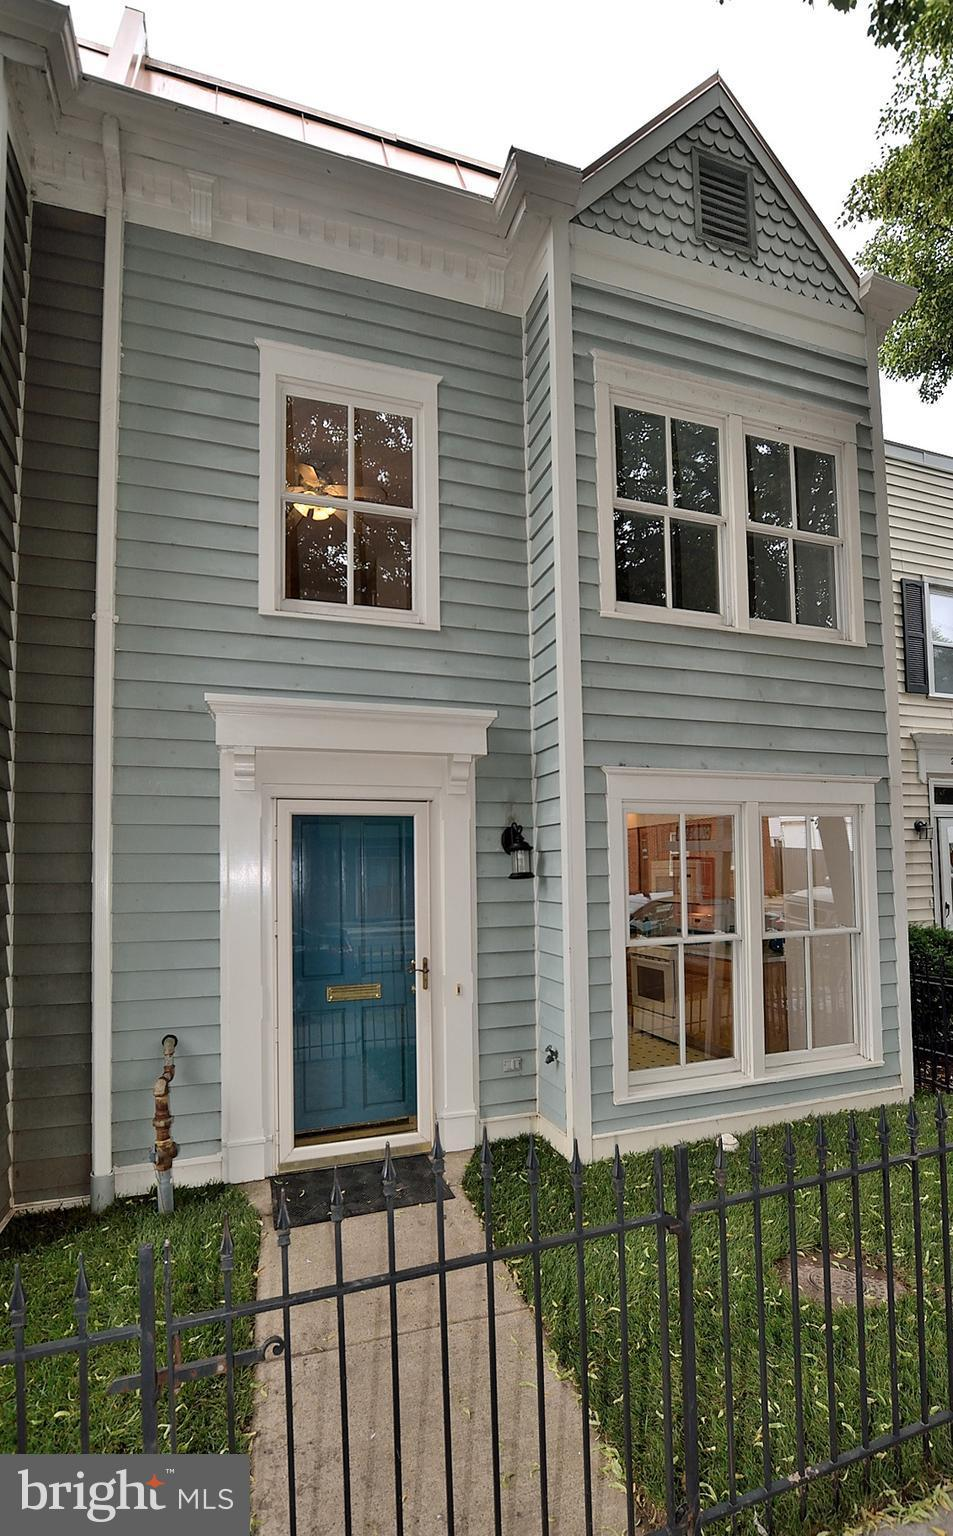 Priced below Tax Assessment. Large home in heart of Old Town w/1748 sq ft on 2 levels built in 2001. 3 BRs and 2 full & 1 half baths. Eat-in kitchen + formal dining room & sun-lit family room with gas FP. Huge master suite with bathroom and walk-in closet. Floored attic with 800 sq ft of storage. OFF STREET PARKING FOR 2 CARS!! Great yard. Metro 3 blocks.